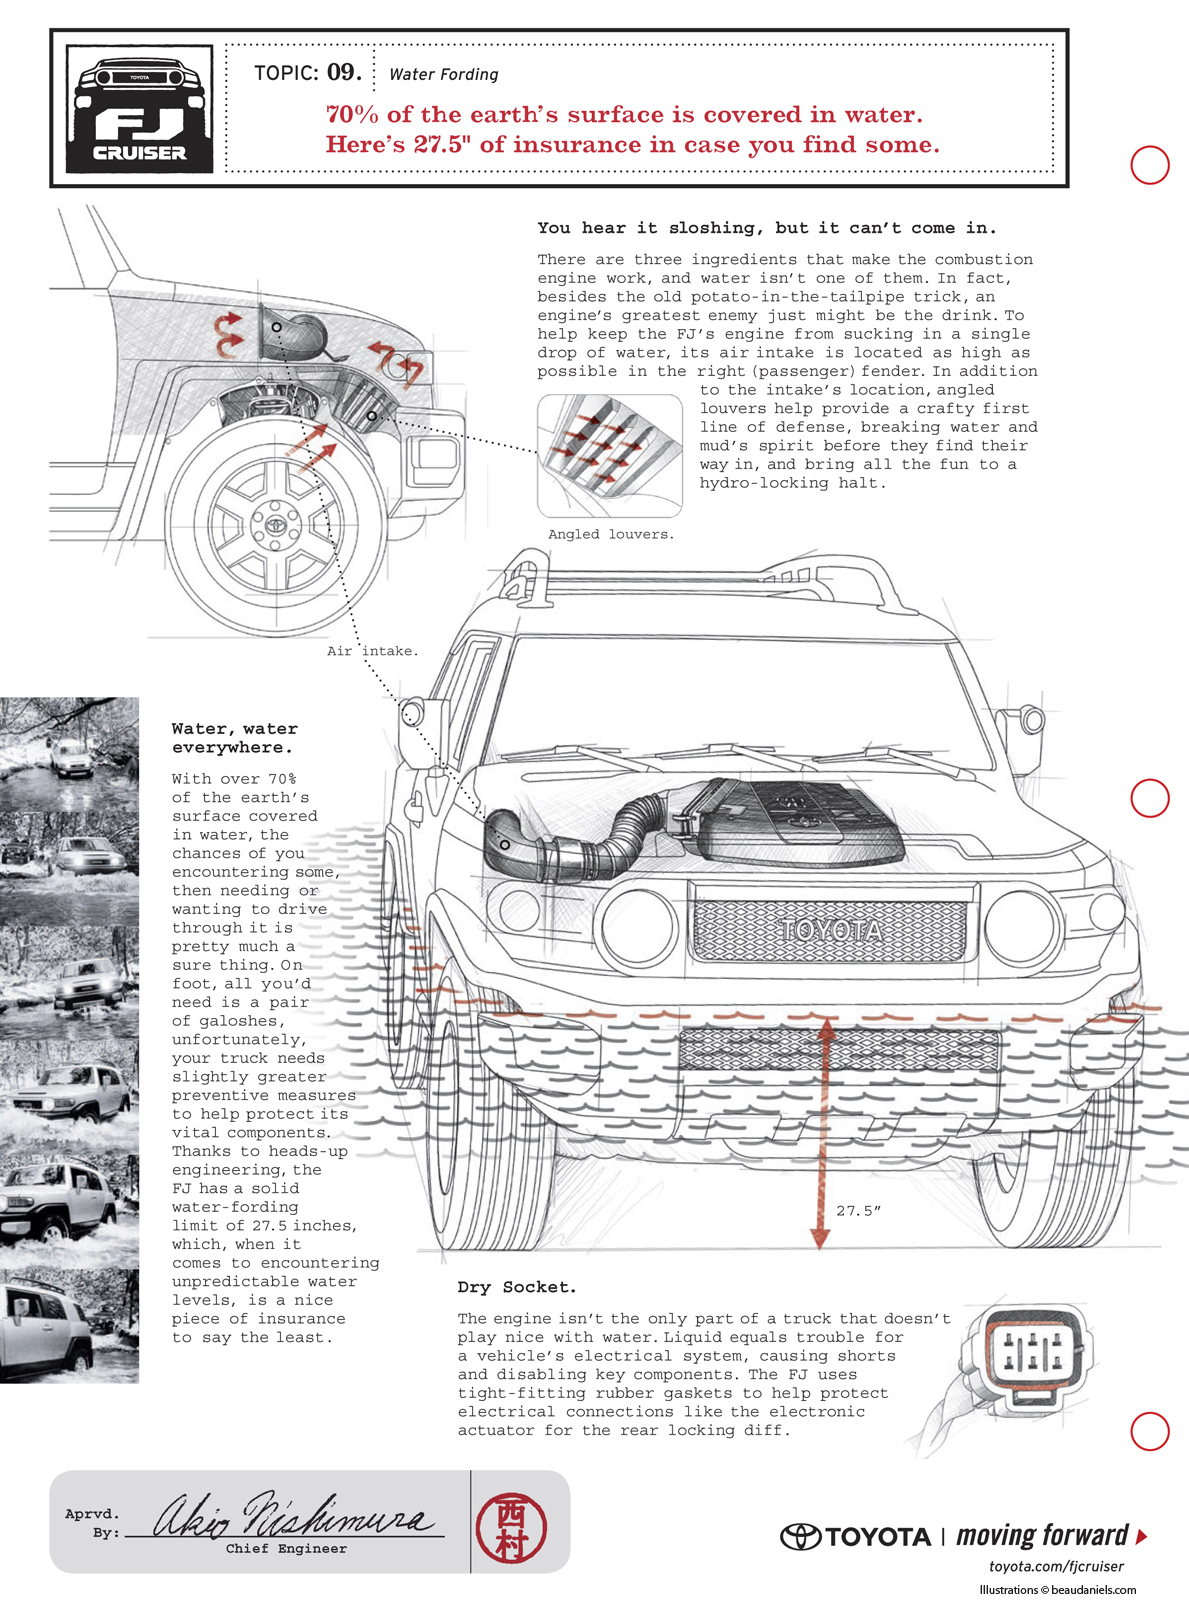 fj cruiser diagram ads toyota fj cruiser forum click image for larger version ghosted technical illustration to show toyota s fj cruiser water